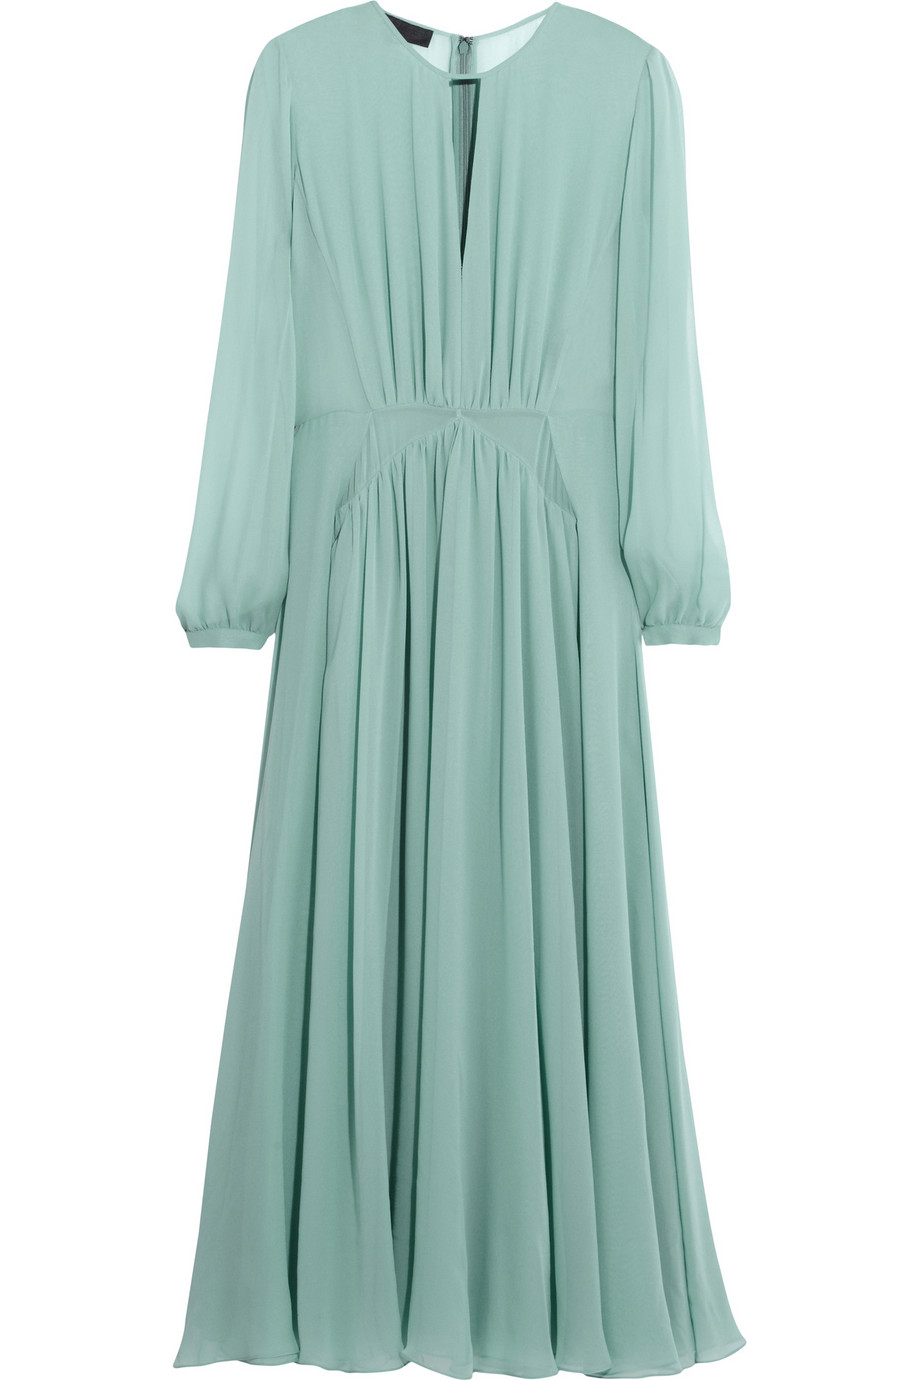 Lyst Burberry Prorsum Silk Chiffon Midi Dress In Green